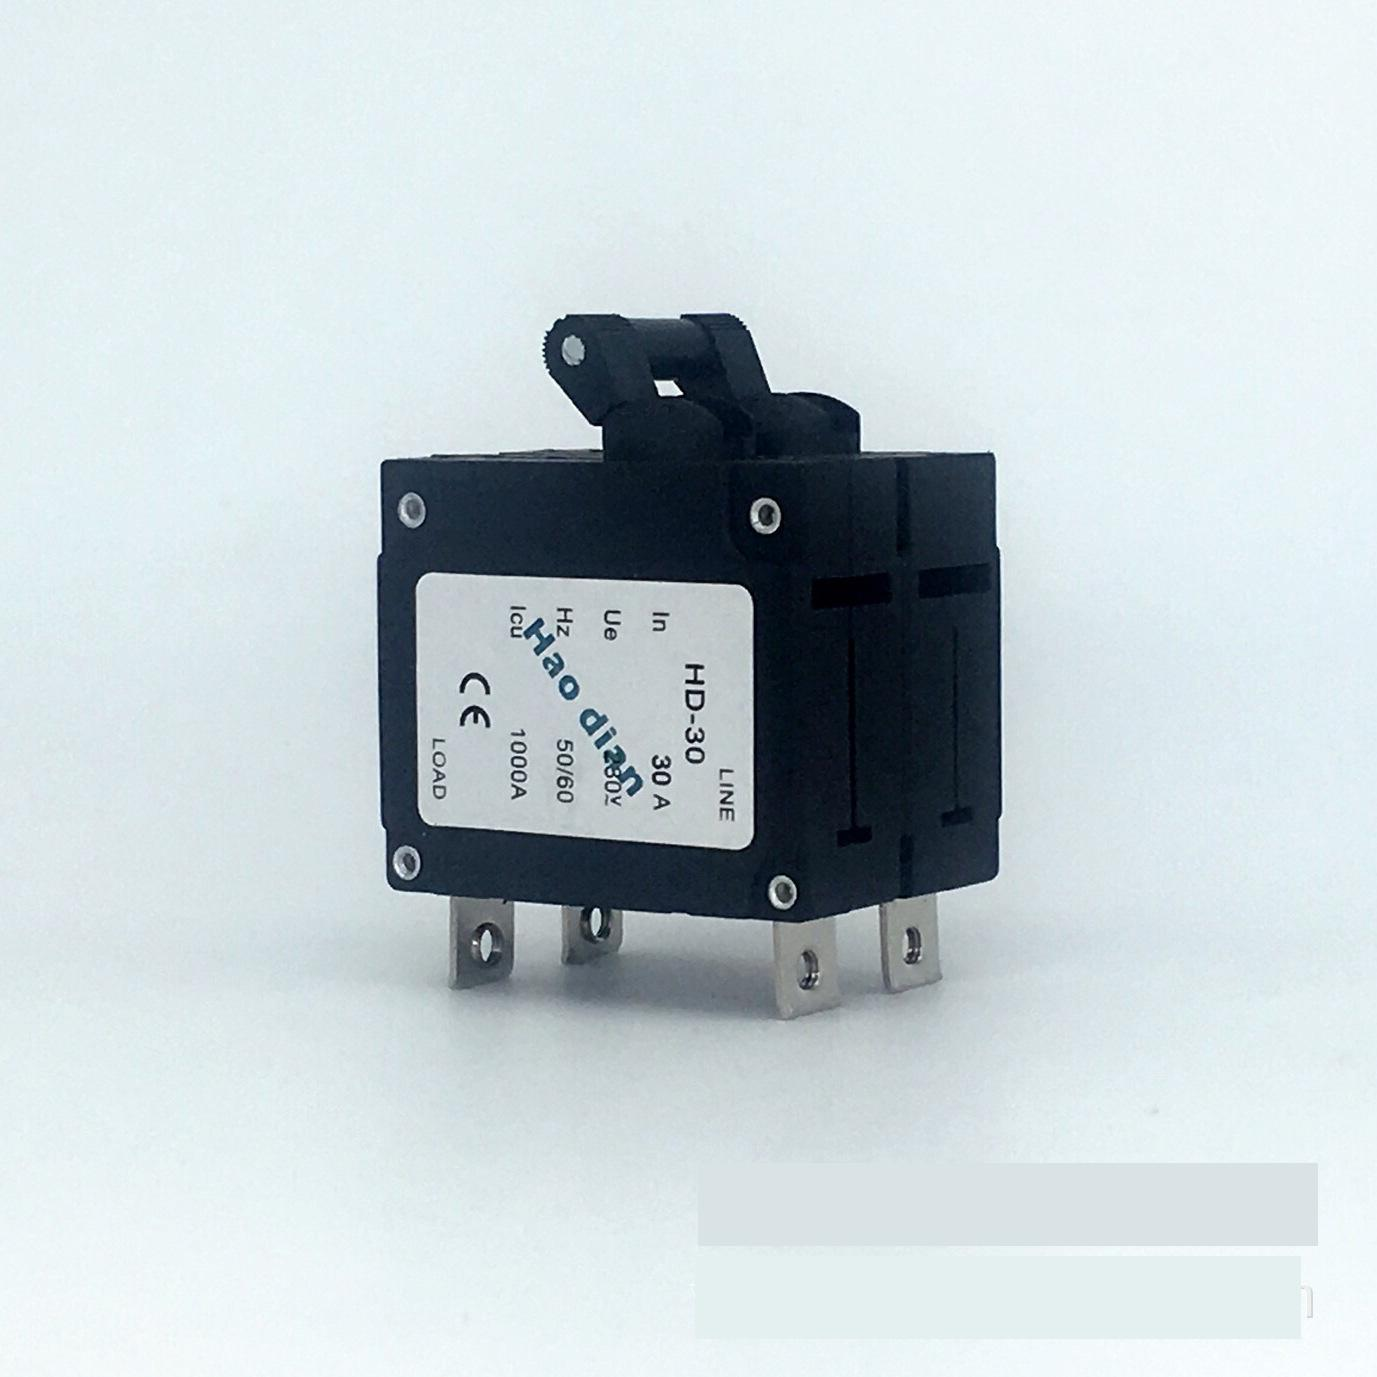 цена на 10pcs Hydraulic electromagnetic circuit breaker hd-30 2P/30A device protects the over-magnetic circuit breaker